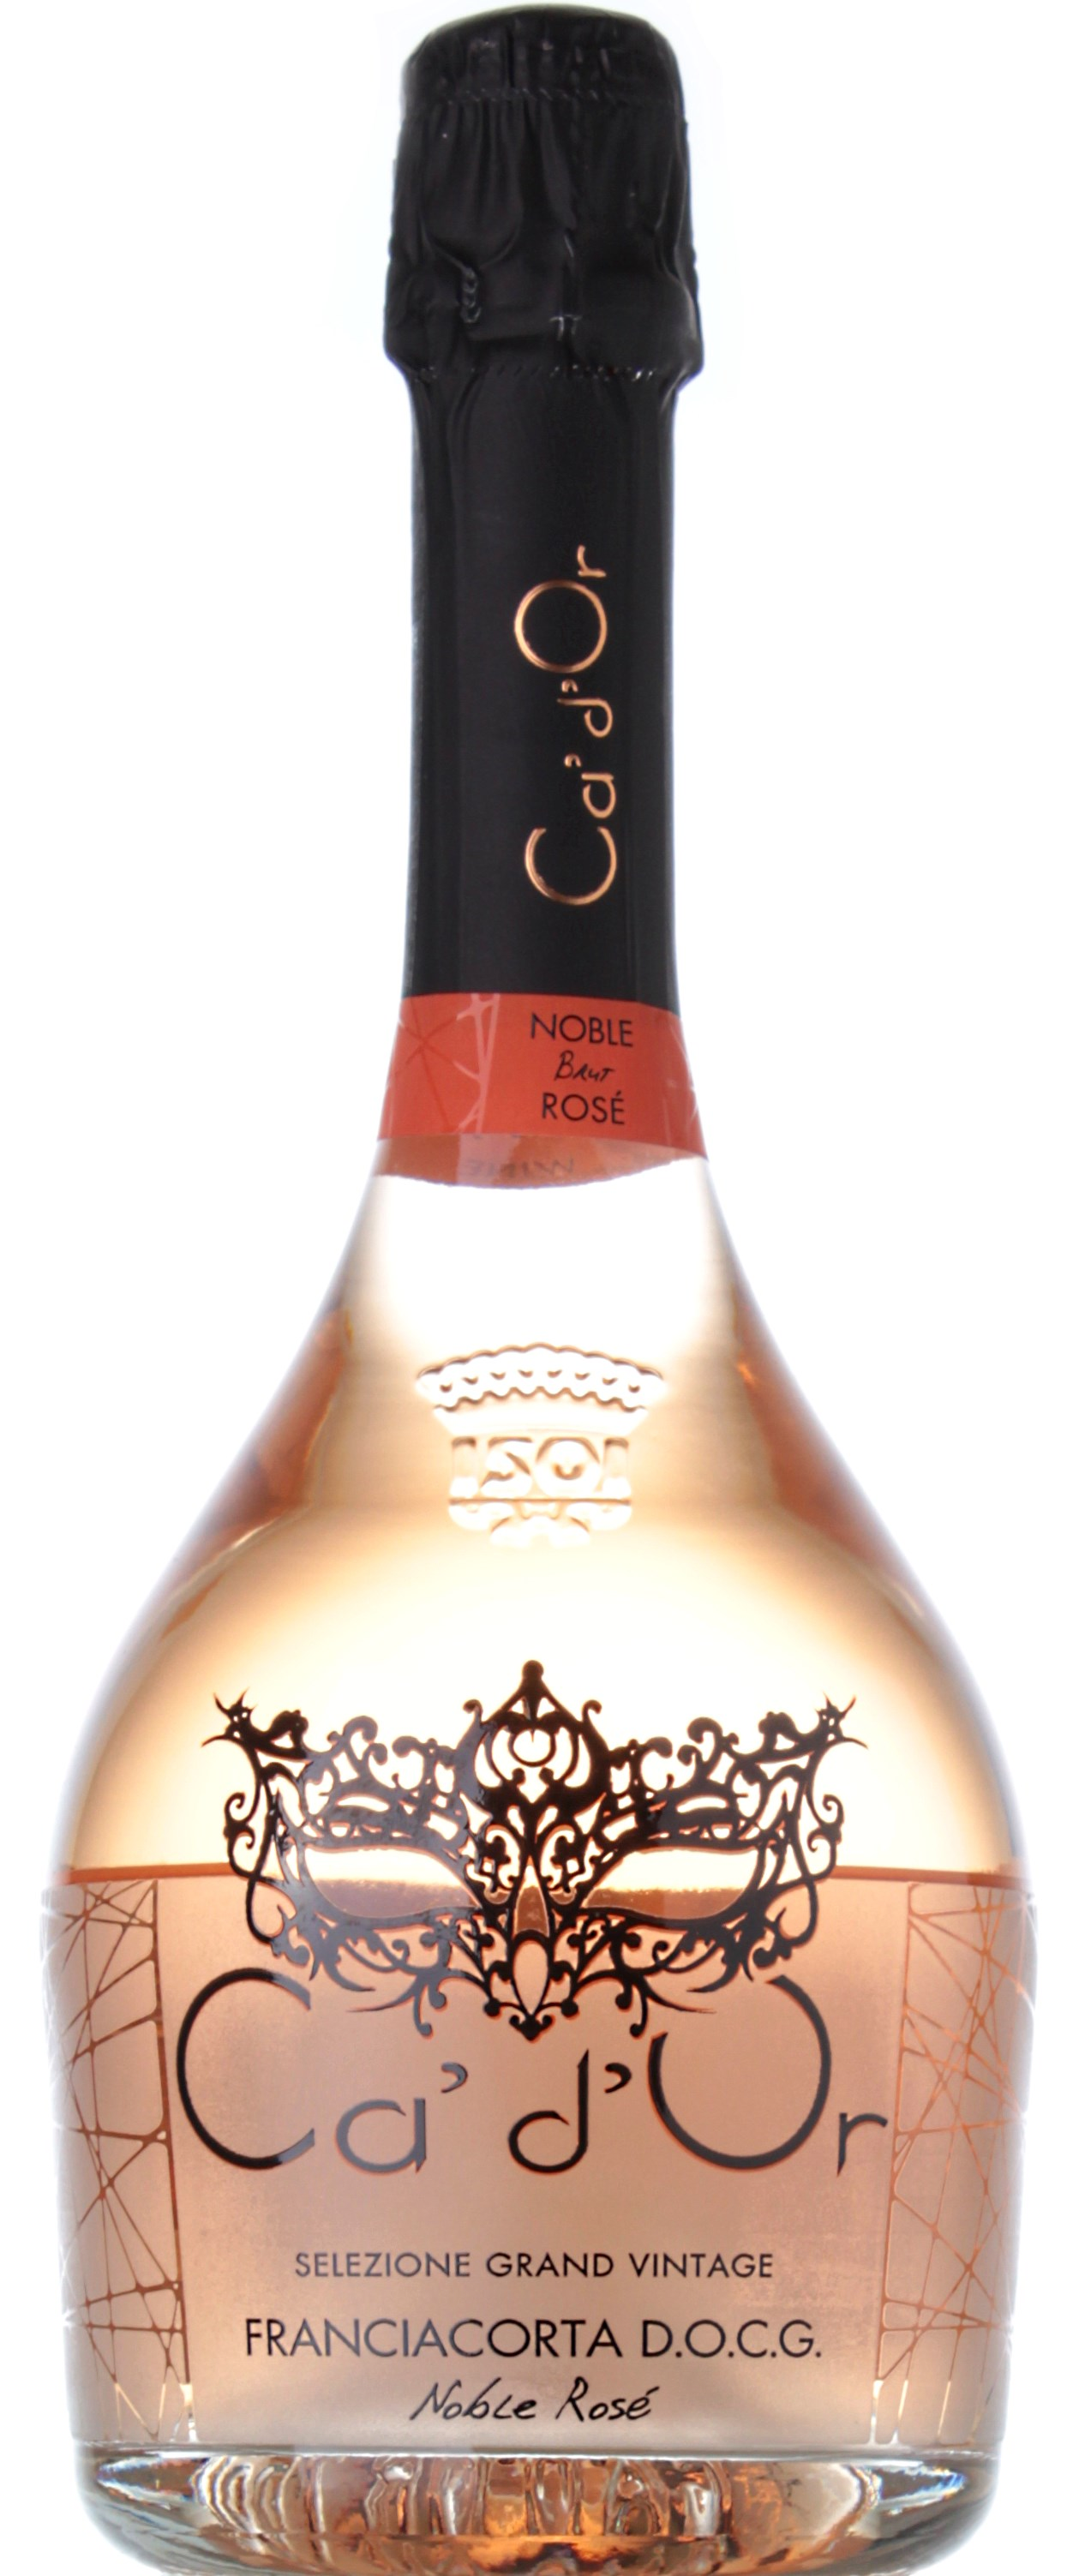 CA DOR FRANCIACORTA GRAND VINTAGE NOBLE ROSE